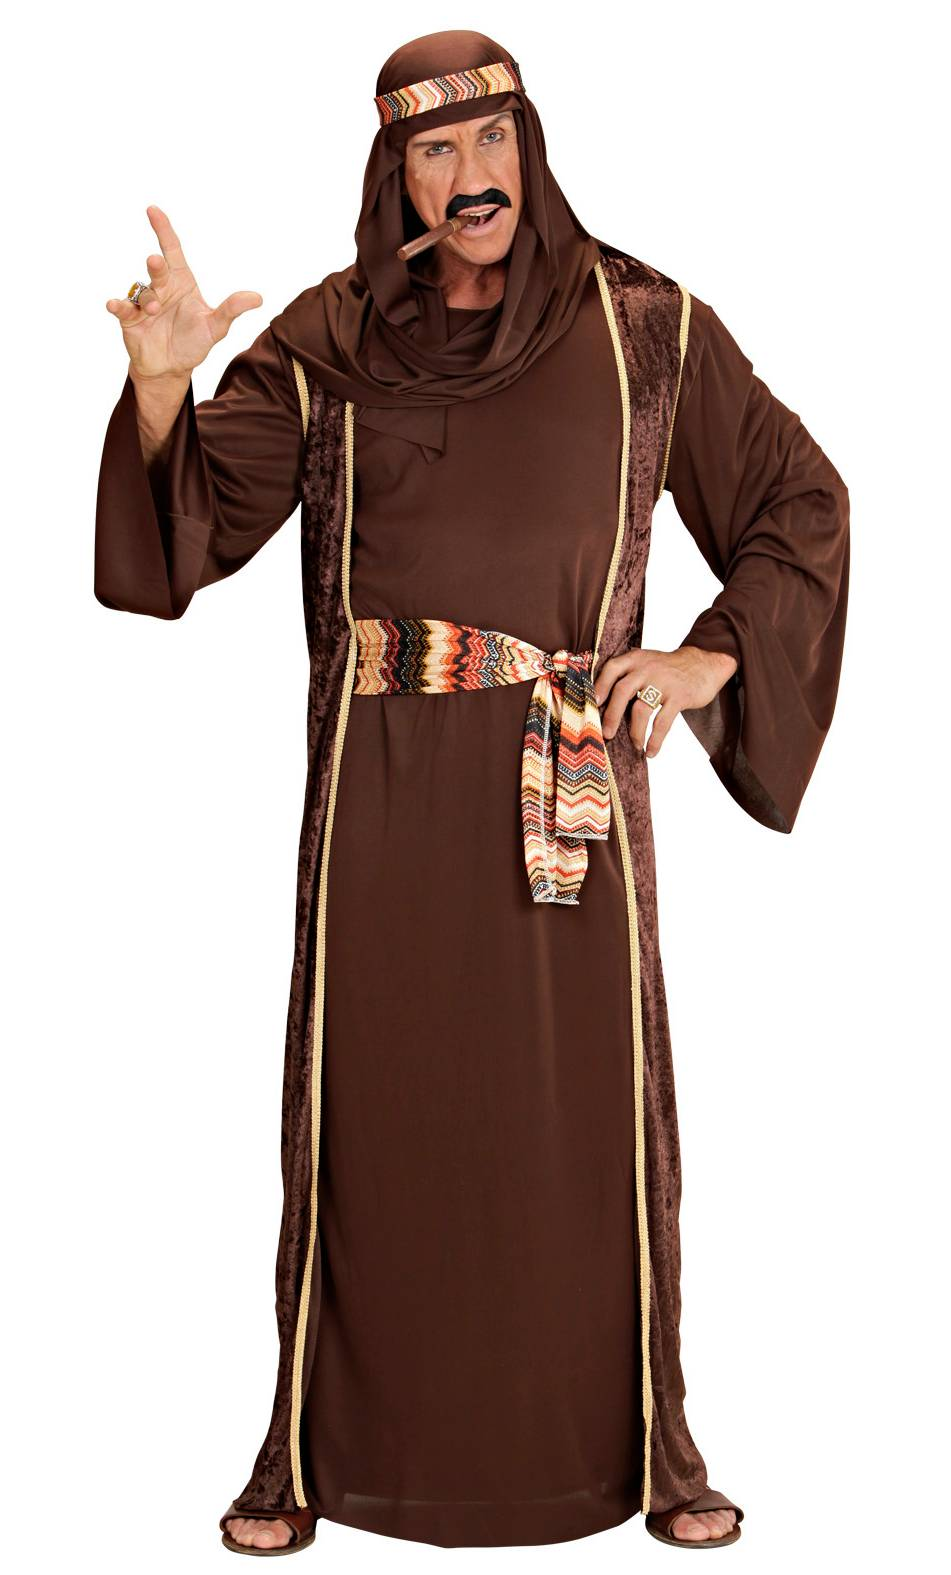 Costume sheik marron homme xl-xxl